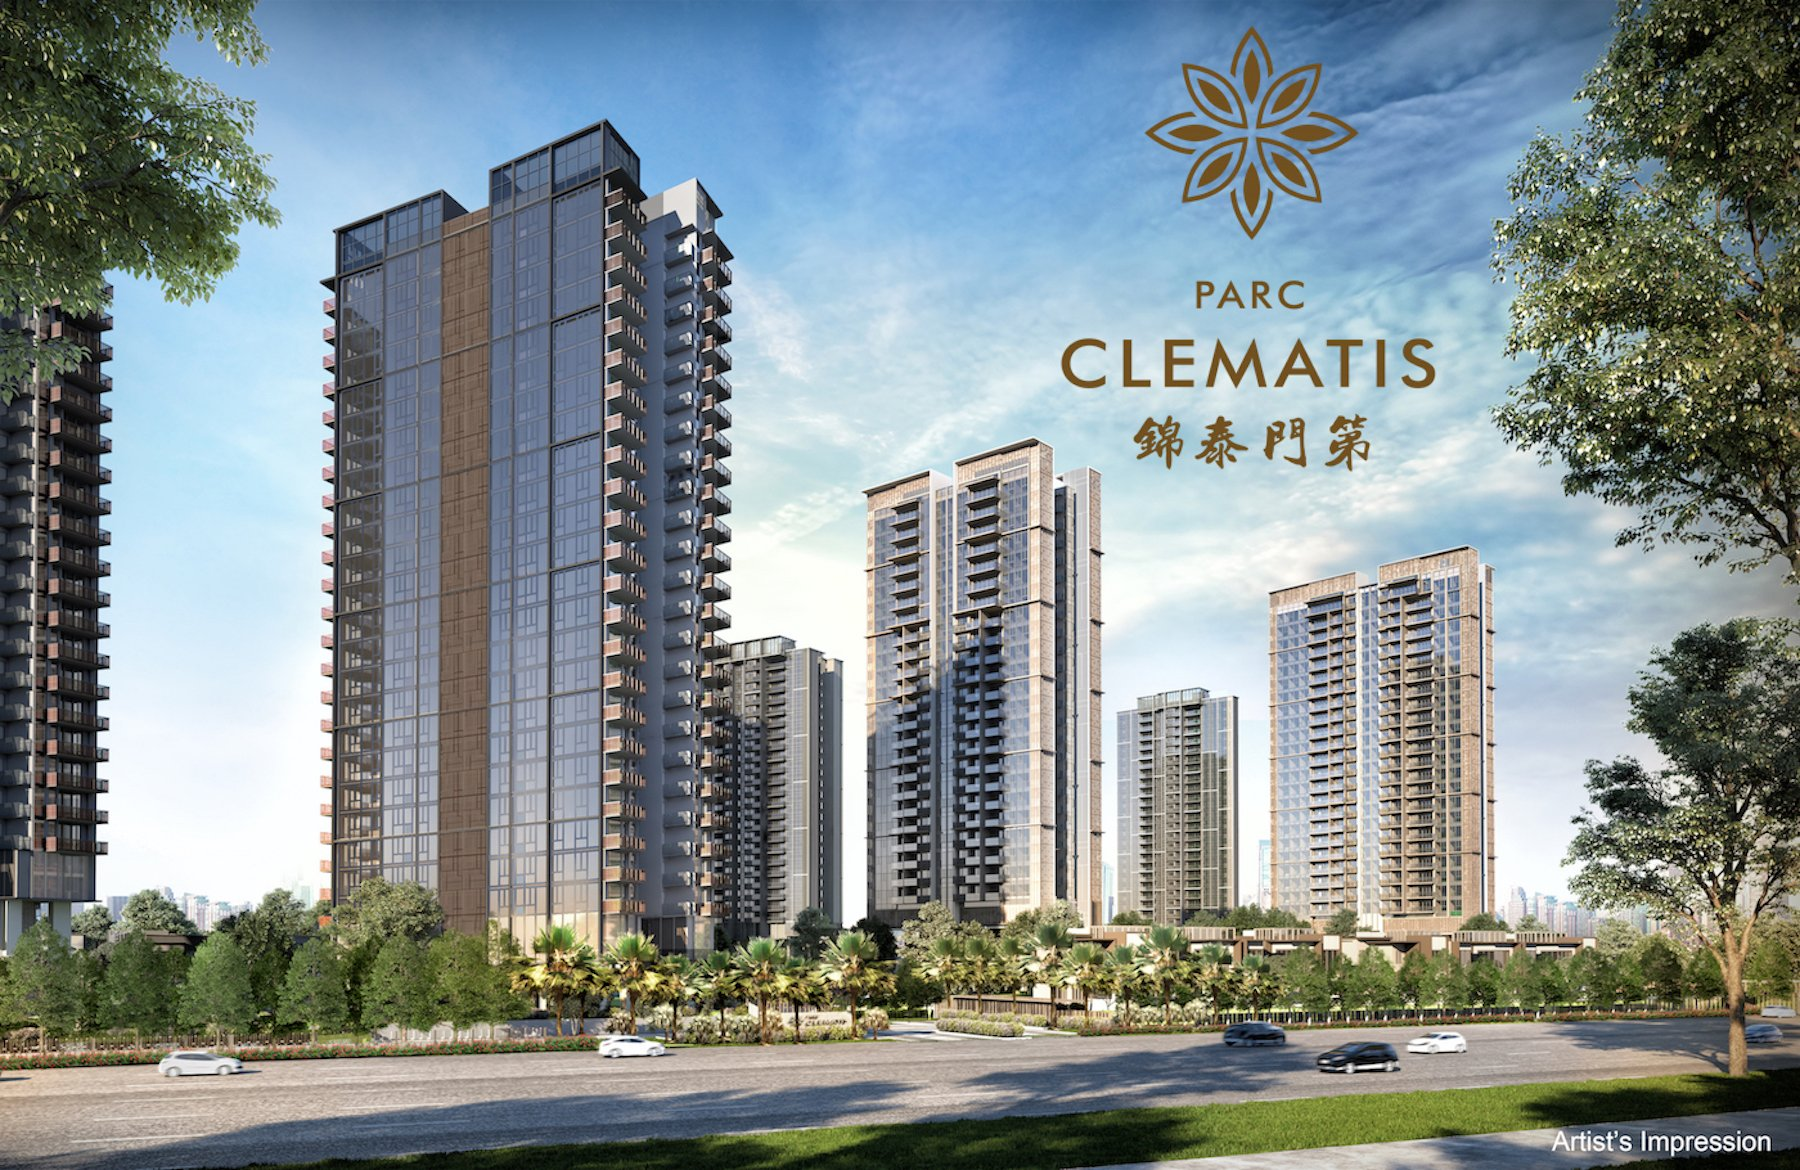 Parc Clematis 锦泰门第 overview hero with logo